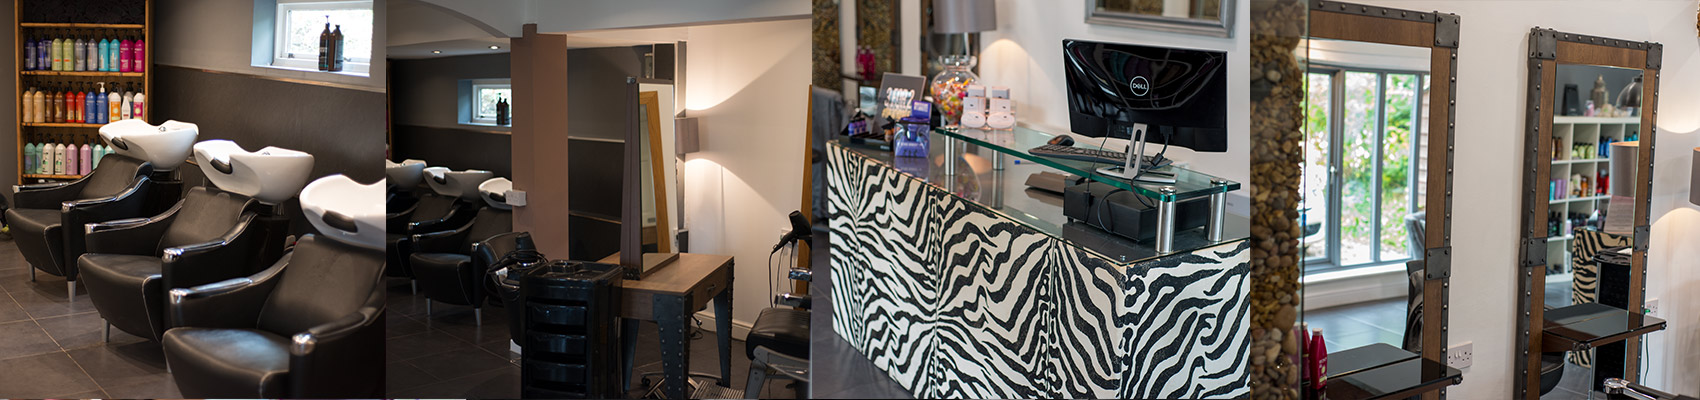 Hair salon Ashford